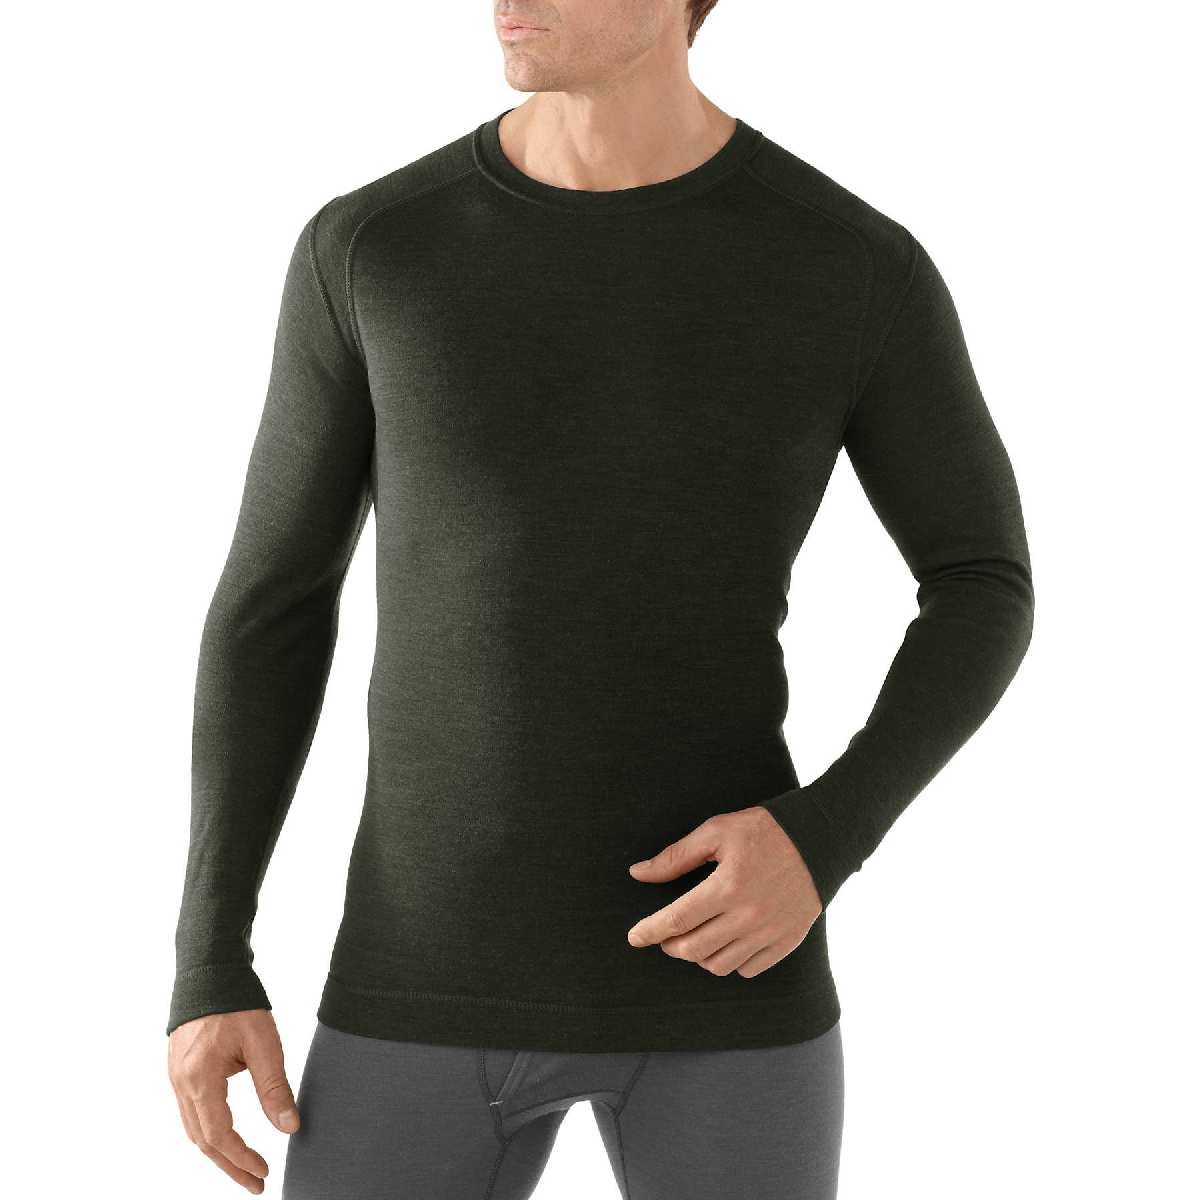 SmartWool NTS Mid 250 Crew Long Sleeve Base Layer Men's Size M OliveHeather U.S.A. & Canada